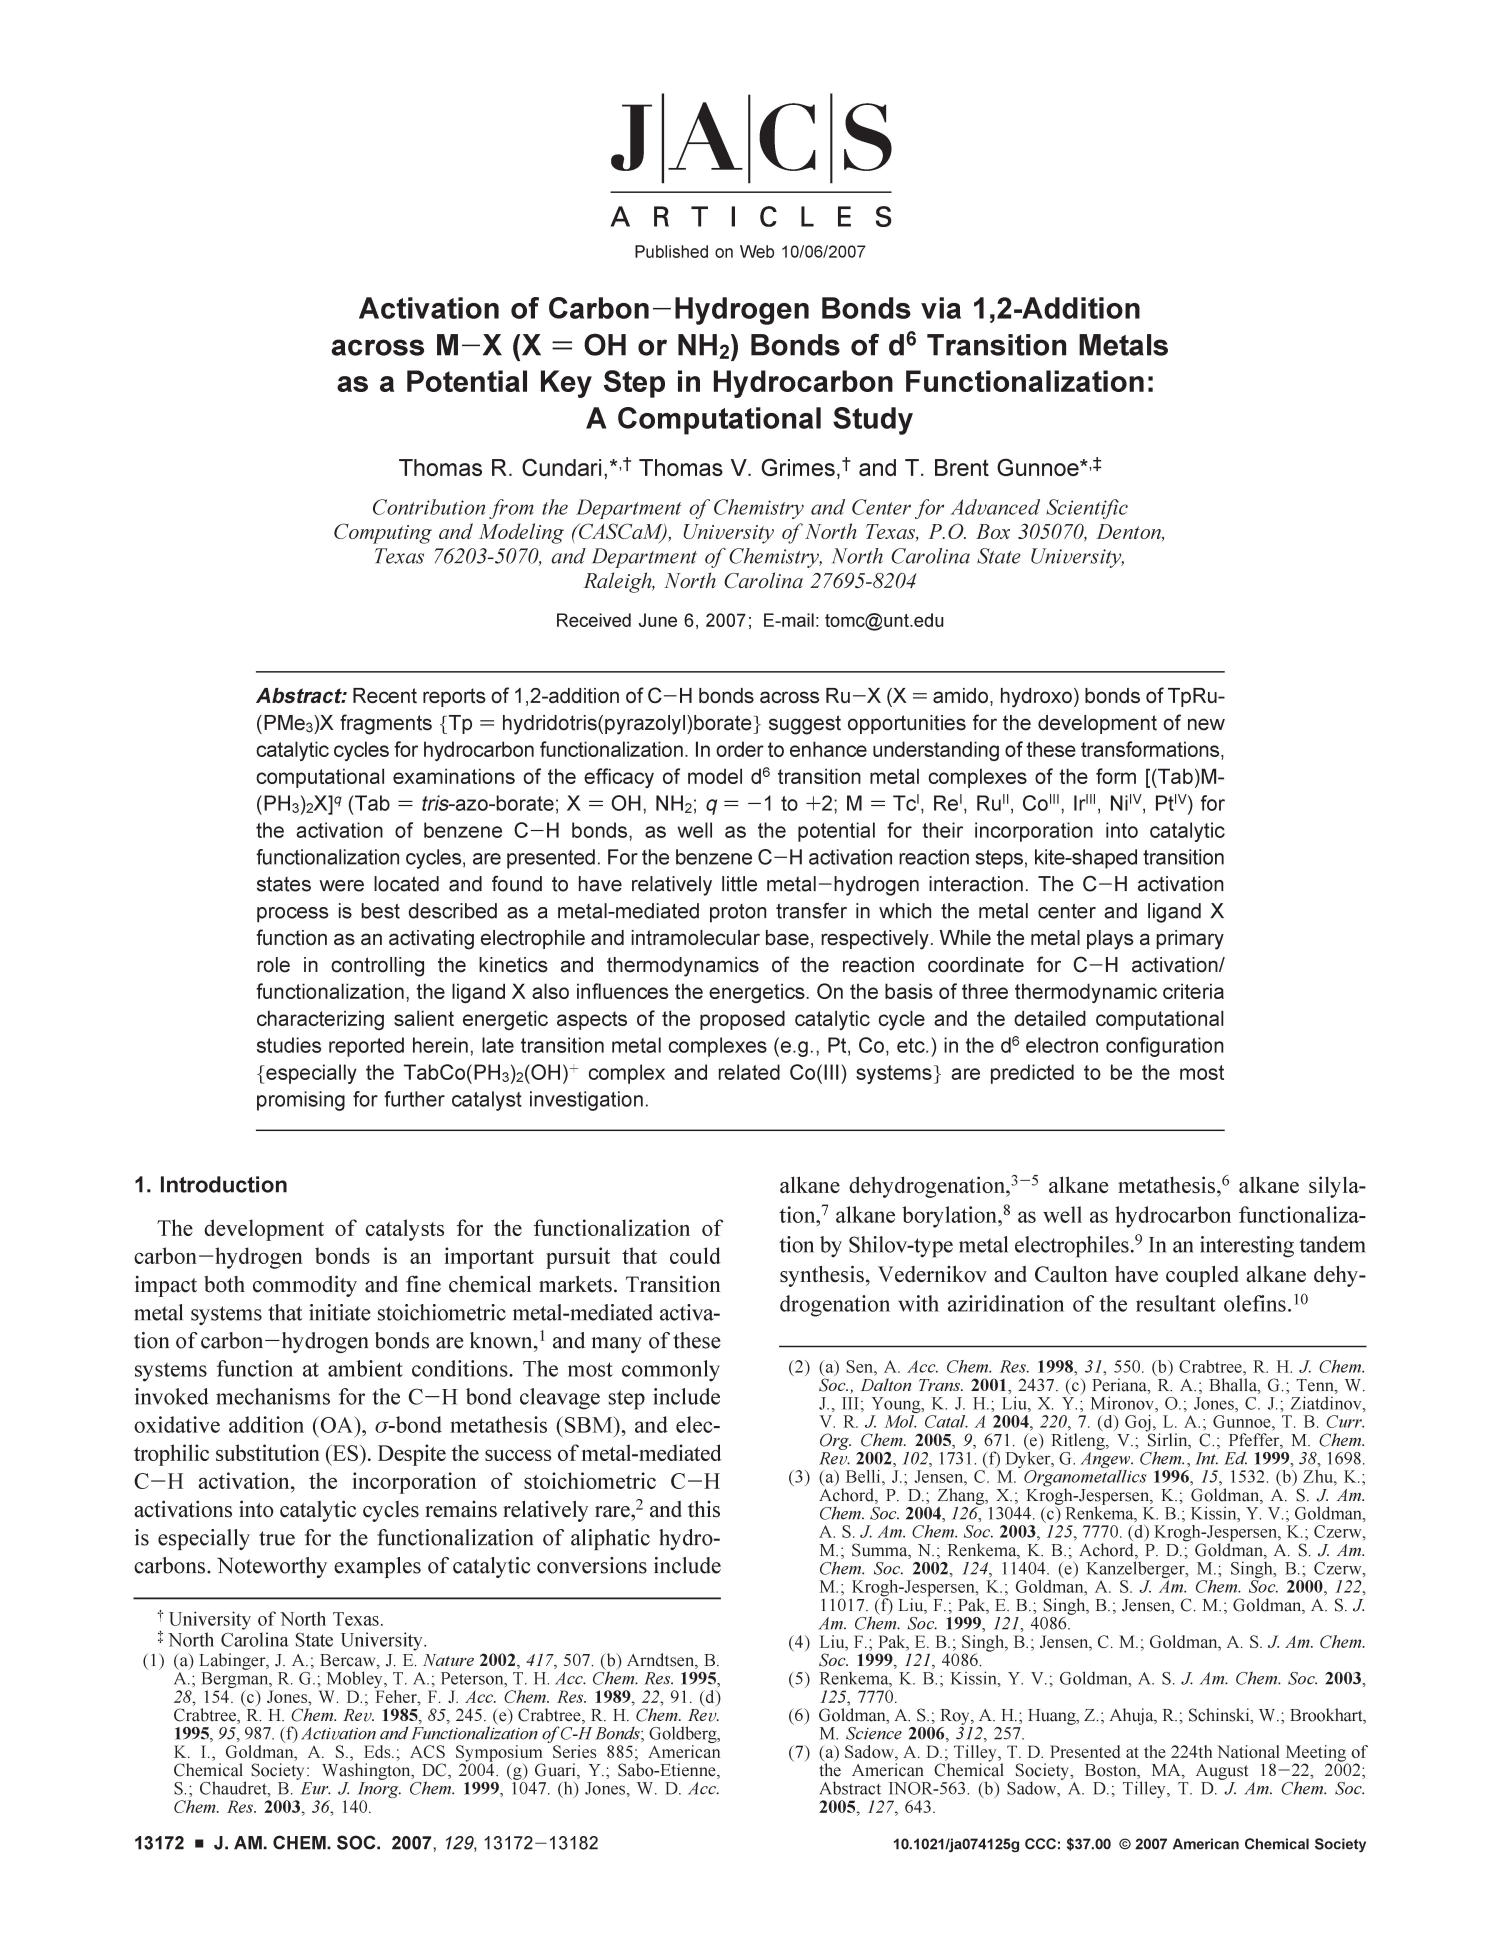 Activation of Carbon-Hydrogen Bonds via 1,2-Addition across M-X (X = OH or NH2) Bonds of d6 Transition Metals as a Potential Key Step in Hydrocarbon Functionalization: A Computational Study                                                                                                      13172